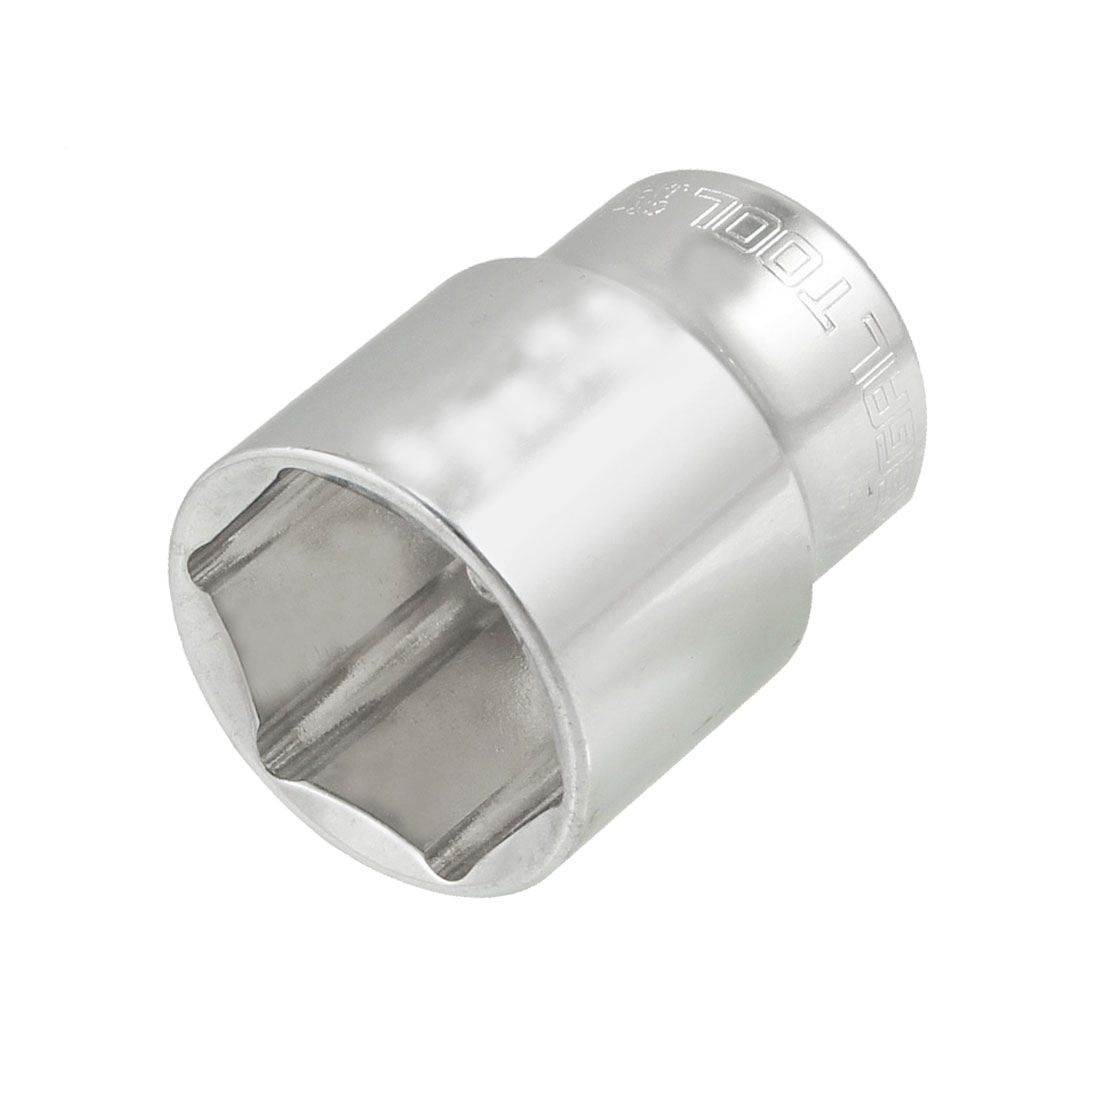 """26mm Hex 1/2"""" Square Drive Chrome Plated Metal 6 Points Socket"""